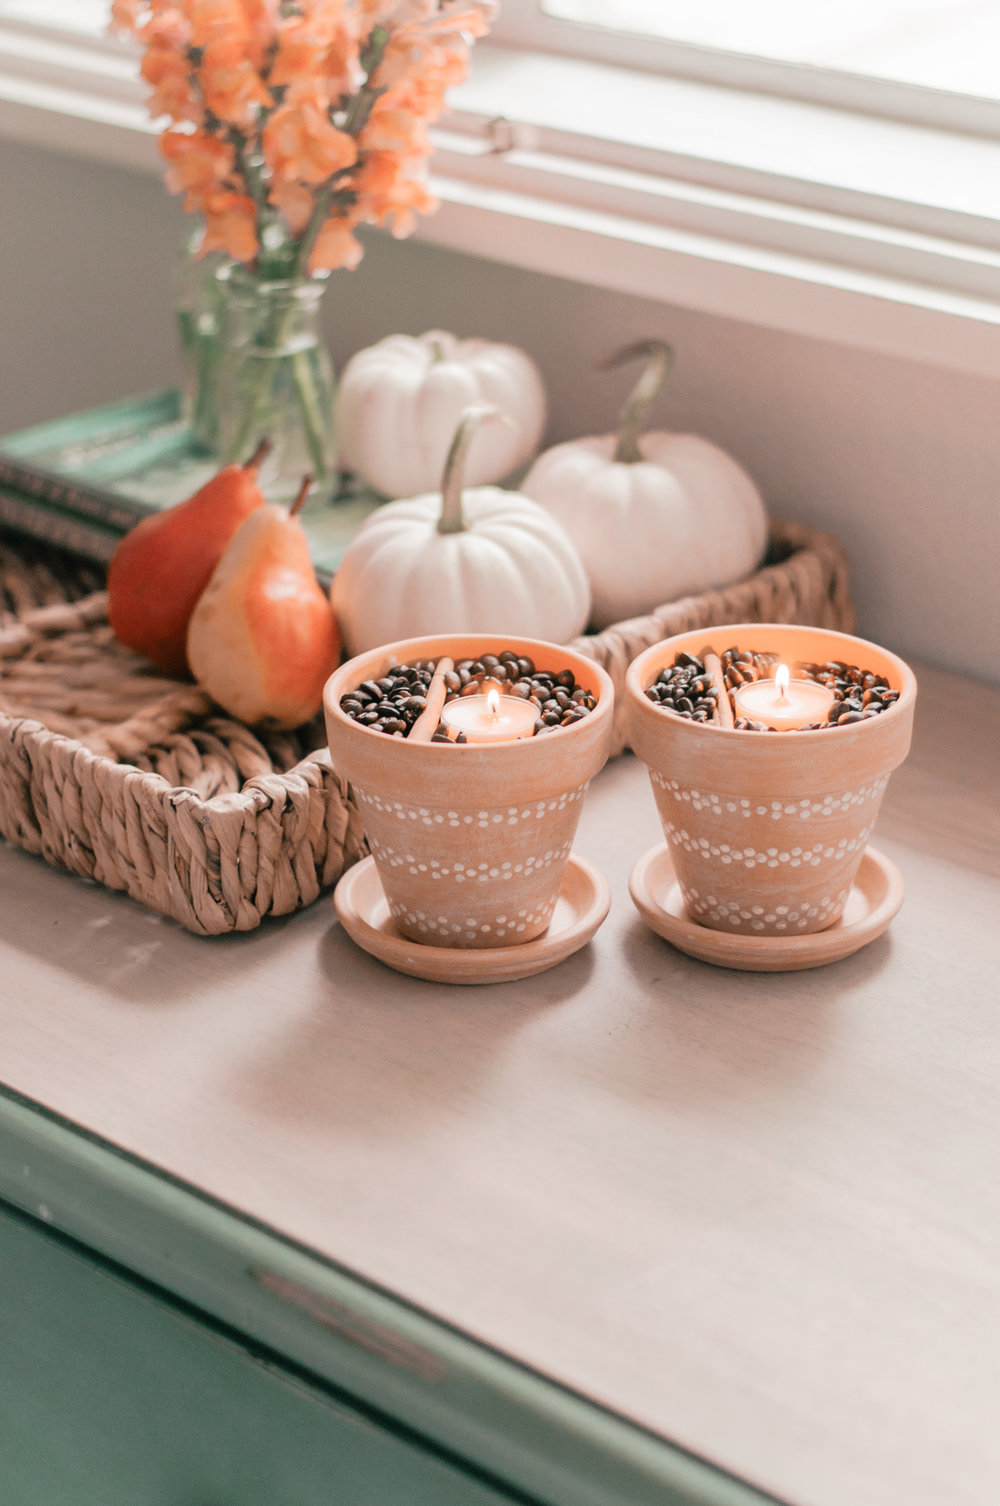 Easy cute DIY painted terracotta pots